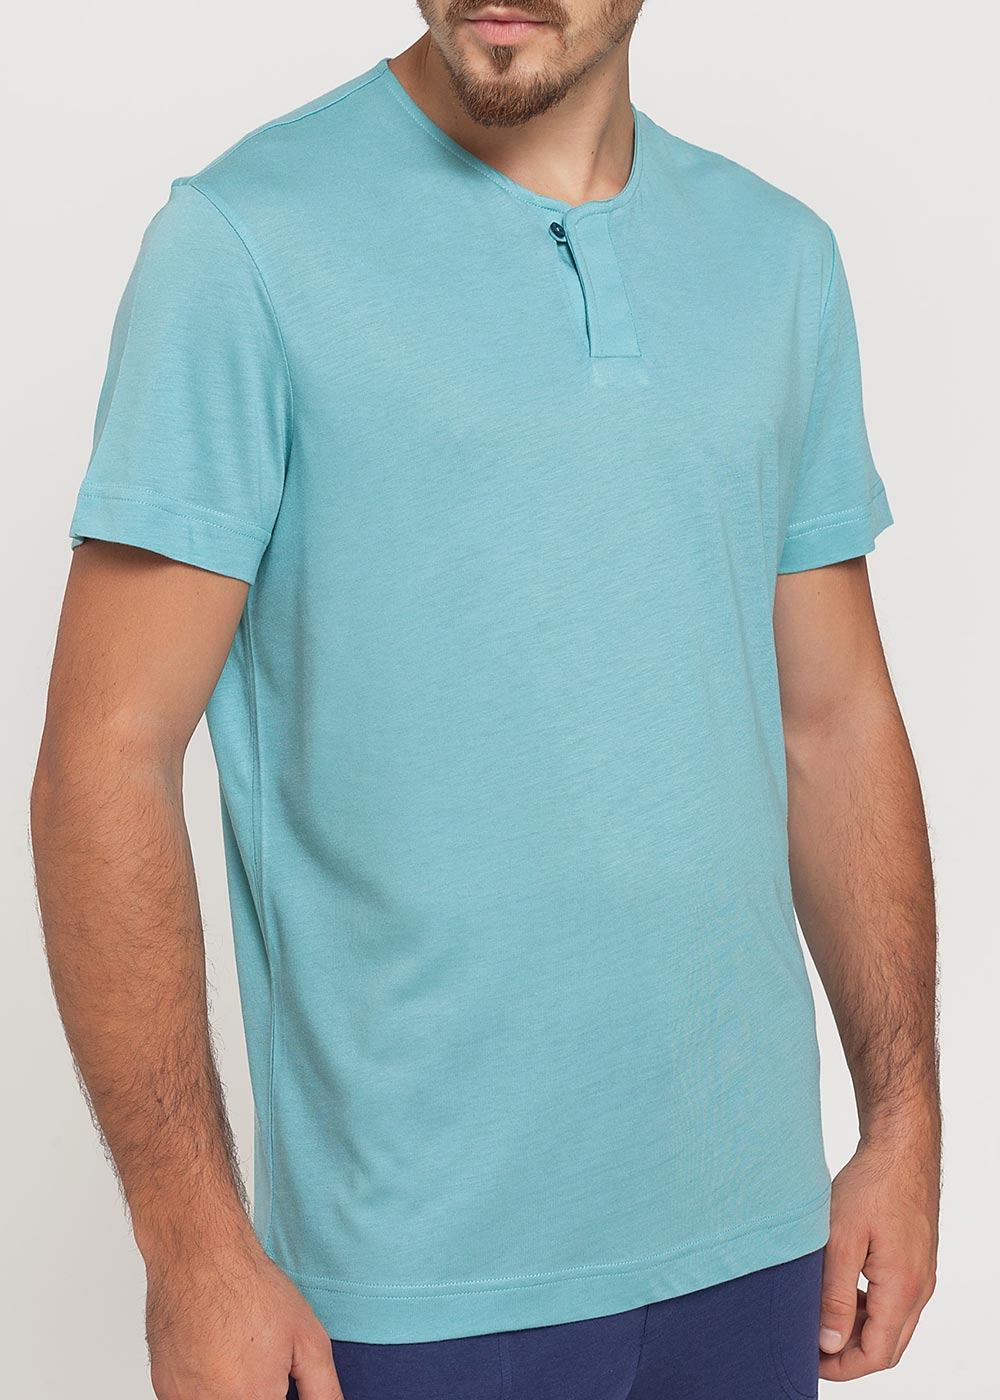 Tricou Breeze - Eucalipt